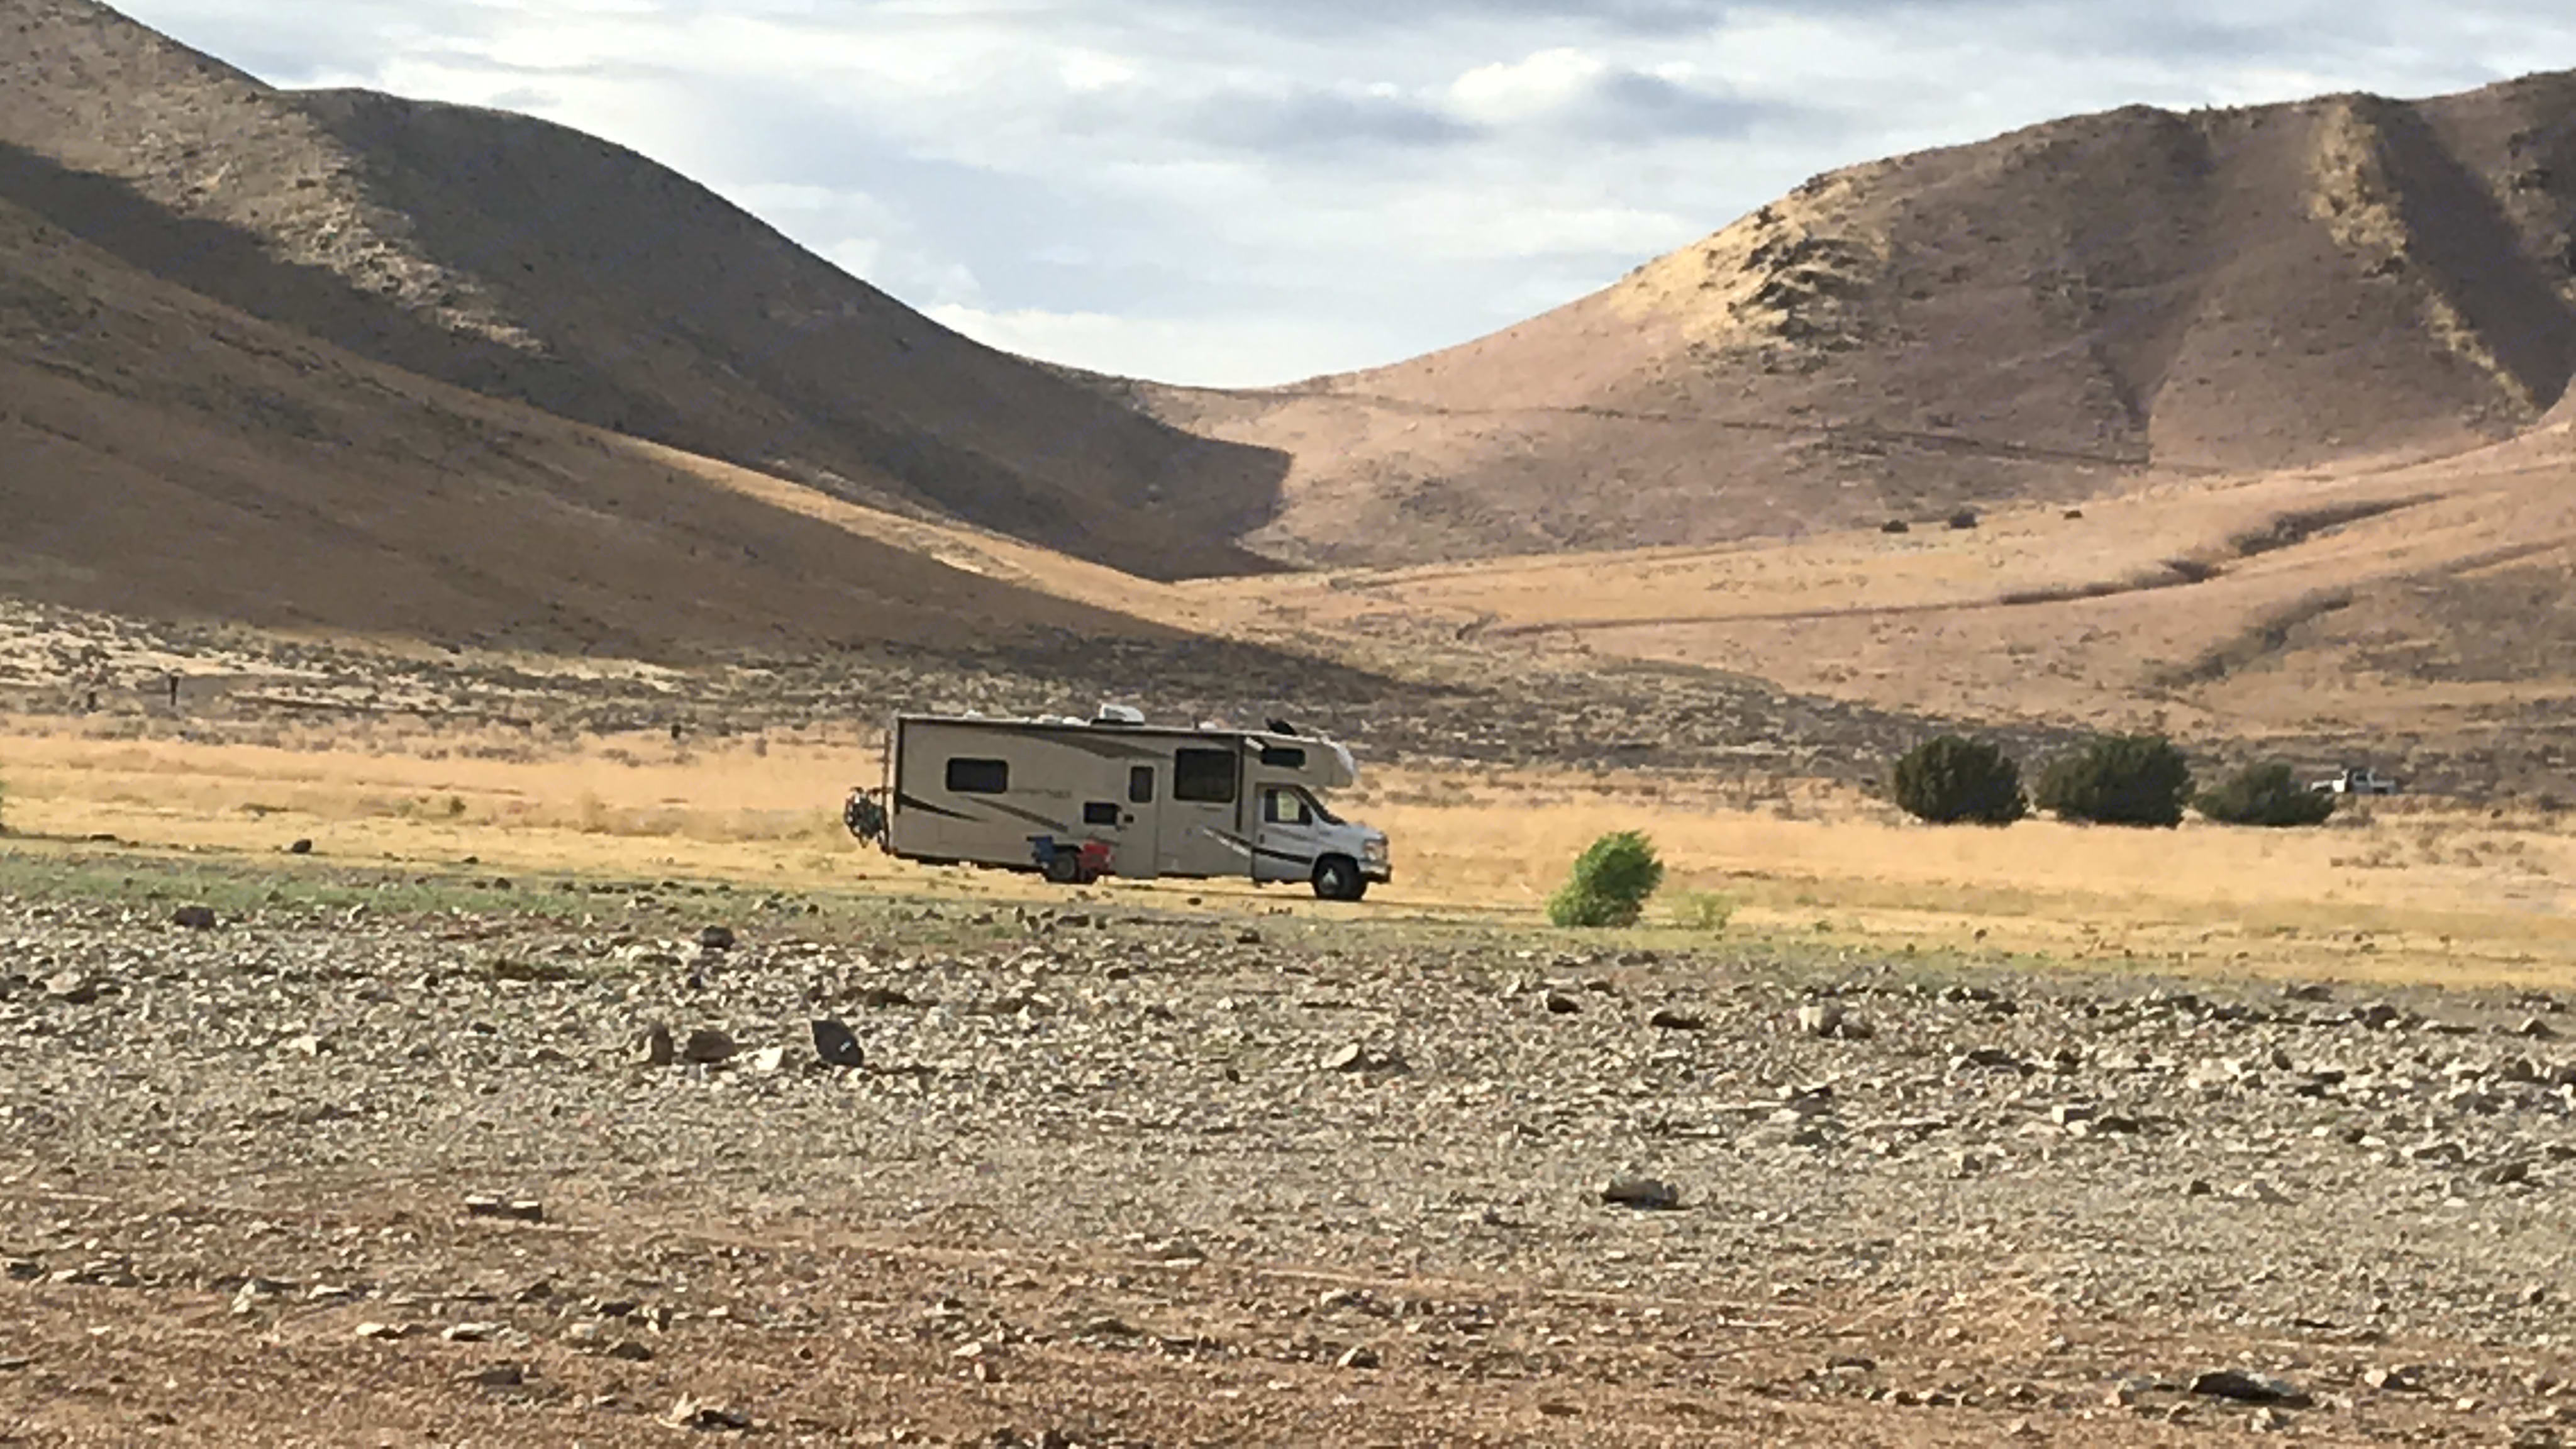 In the middle of no-where. Breathing nature with our cozy 2nd home.. Ford Coachman 2019